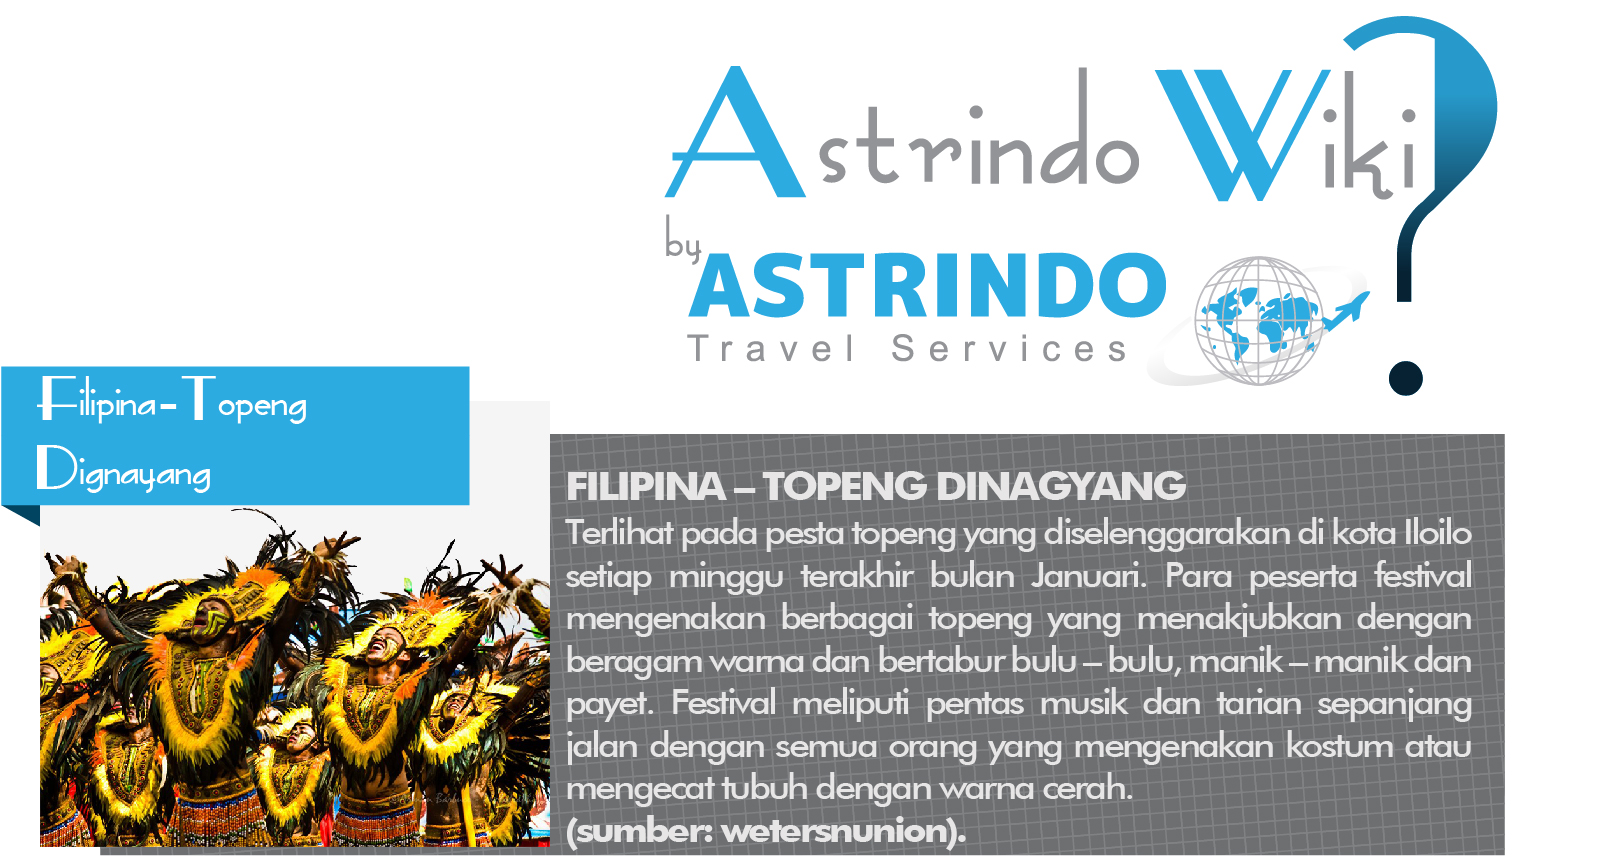 Astrindo Travel Services